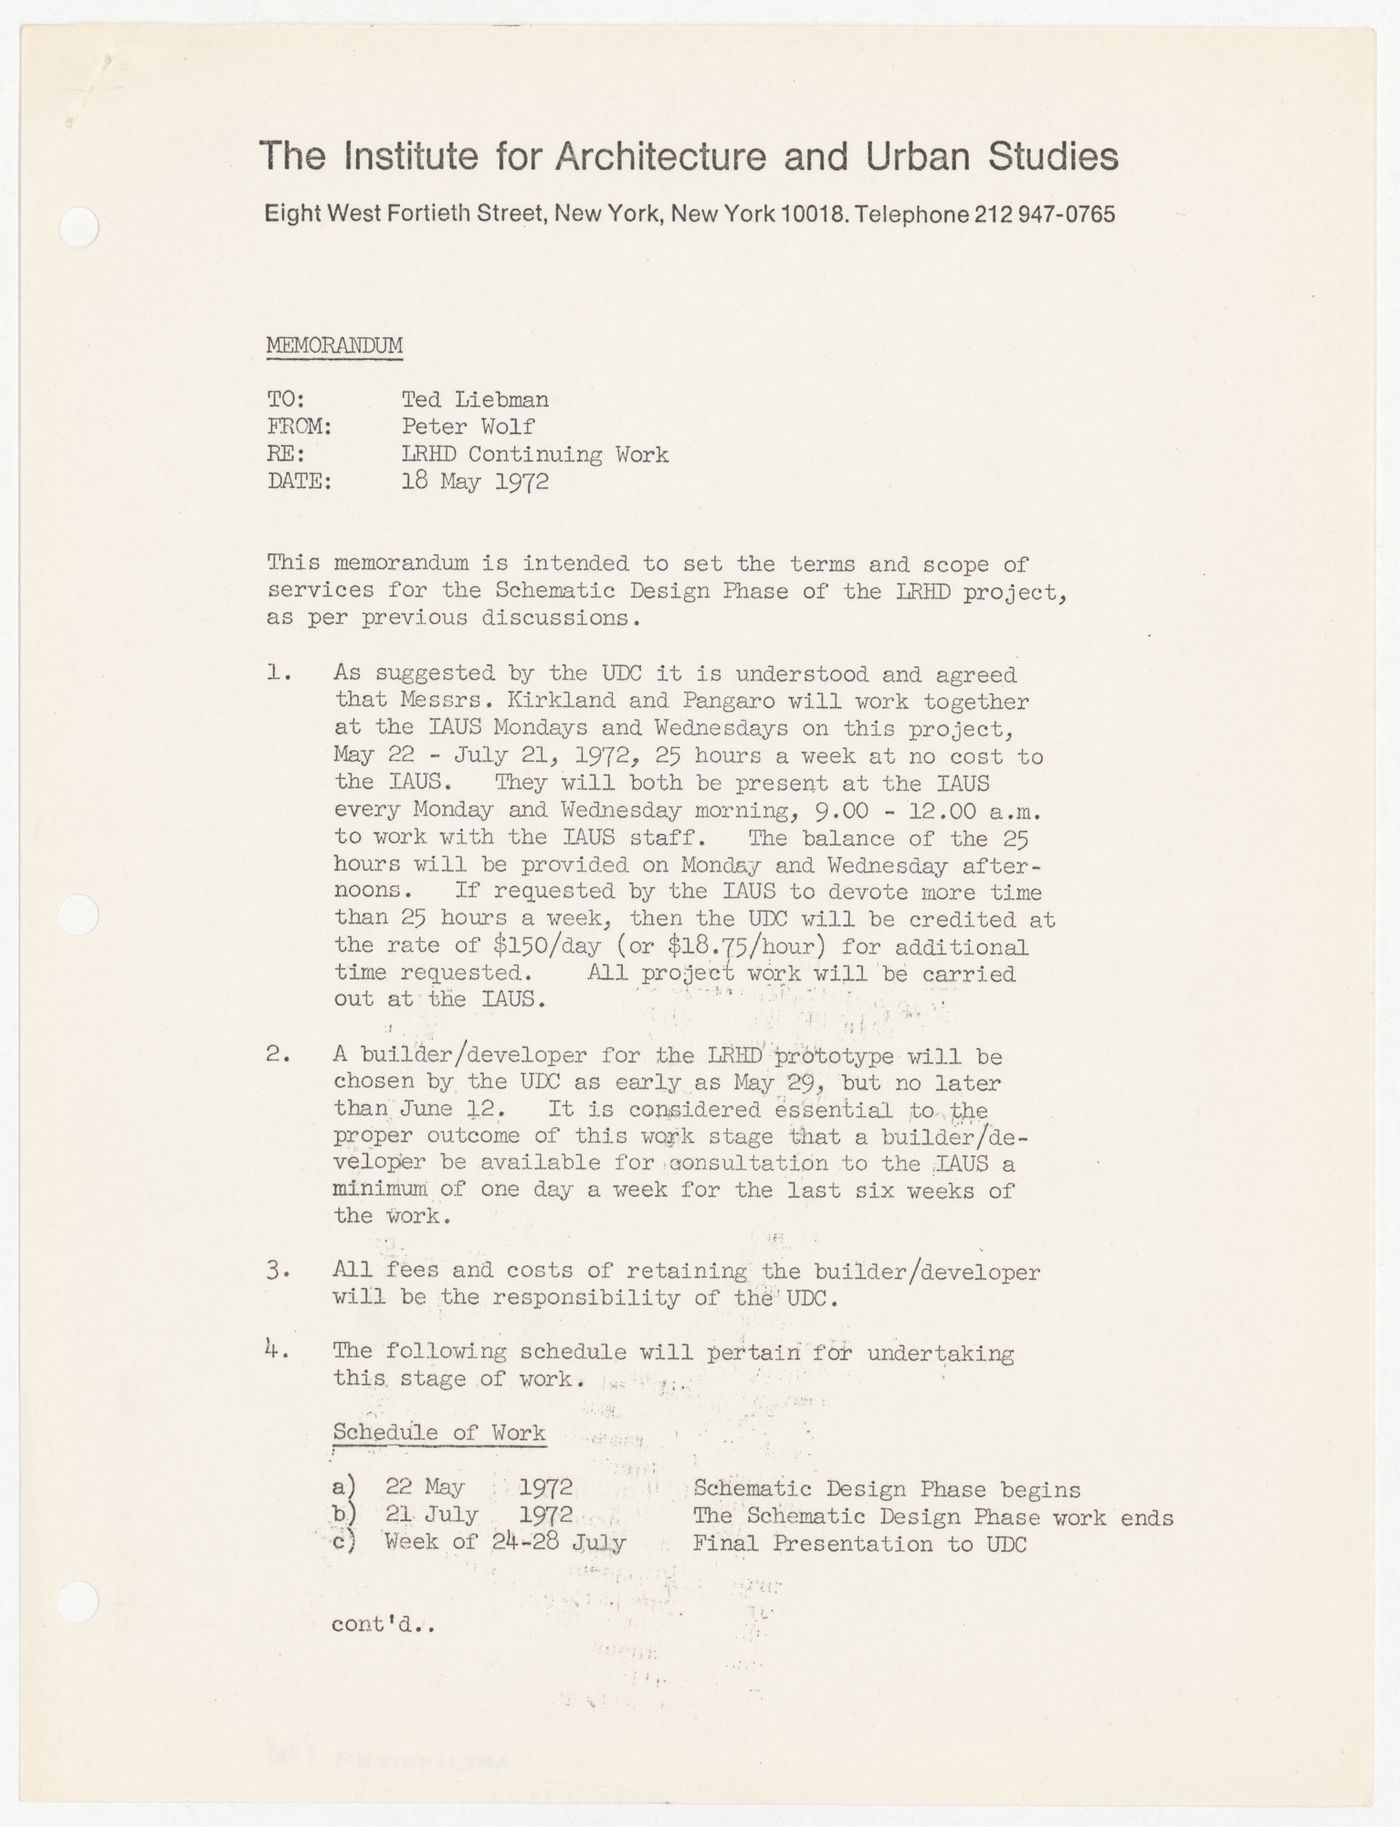 Memorandum from Peter Wolf to Theodore Liebman about the terms and scope of services for the schematic design phase of the Low-Rise HIgh-Density (LRHD) project